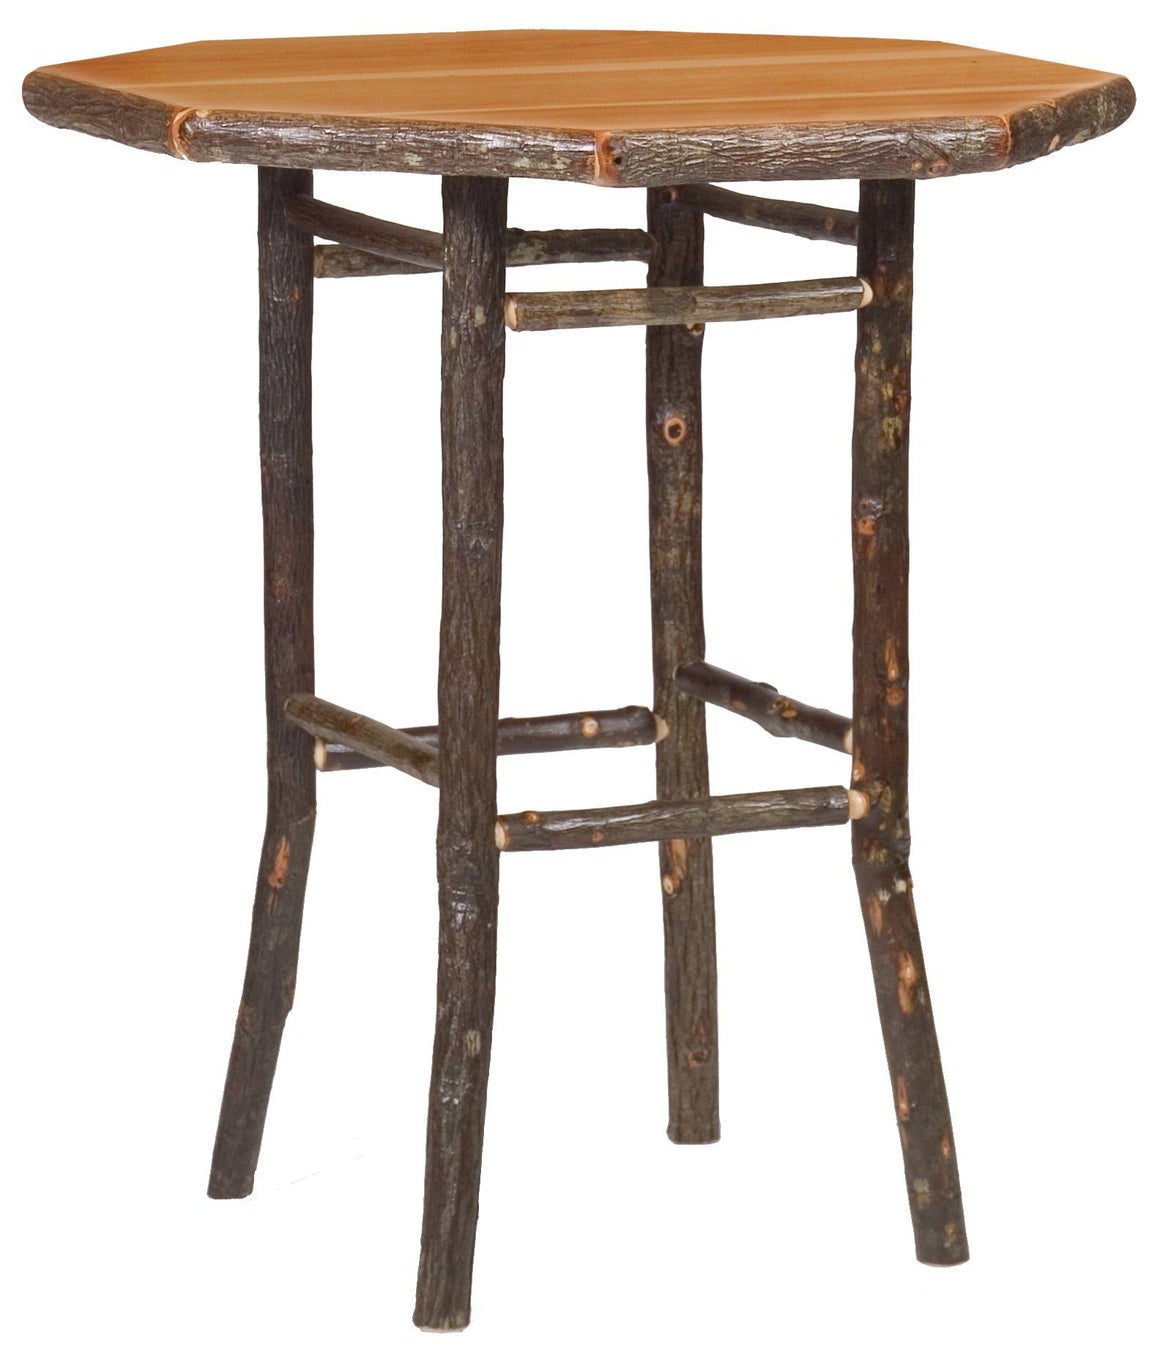 "Hickory Log Round Pub Table - 32"", 36"", 40"" - Standard Finish - Rustic Deco Incorporated"